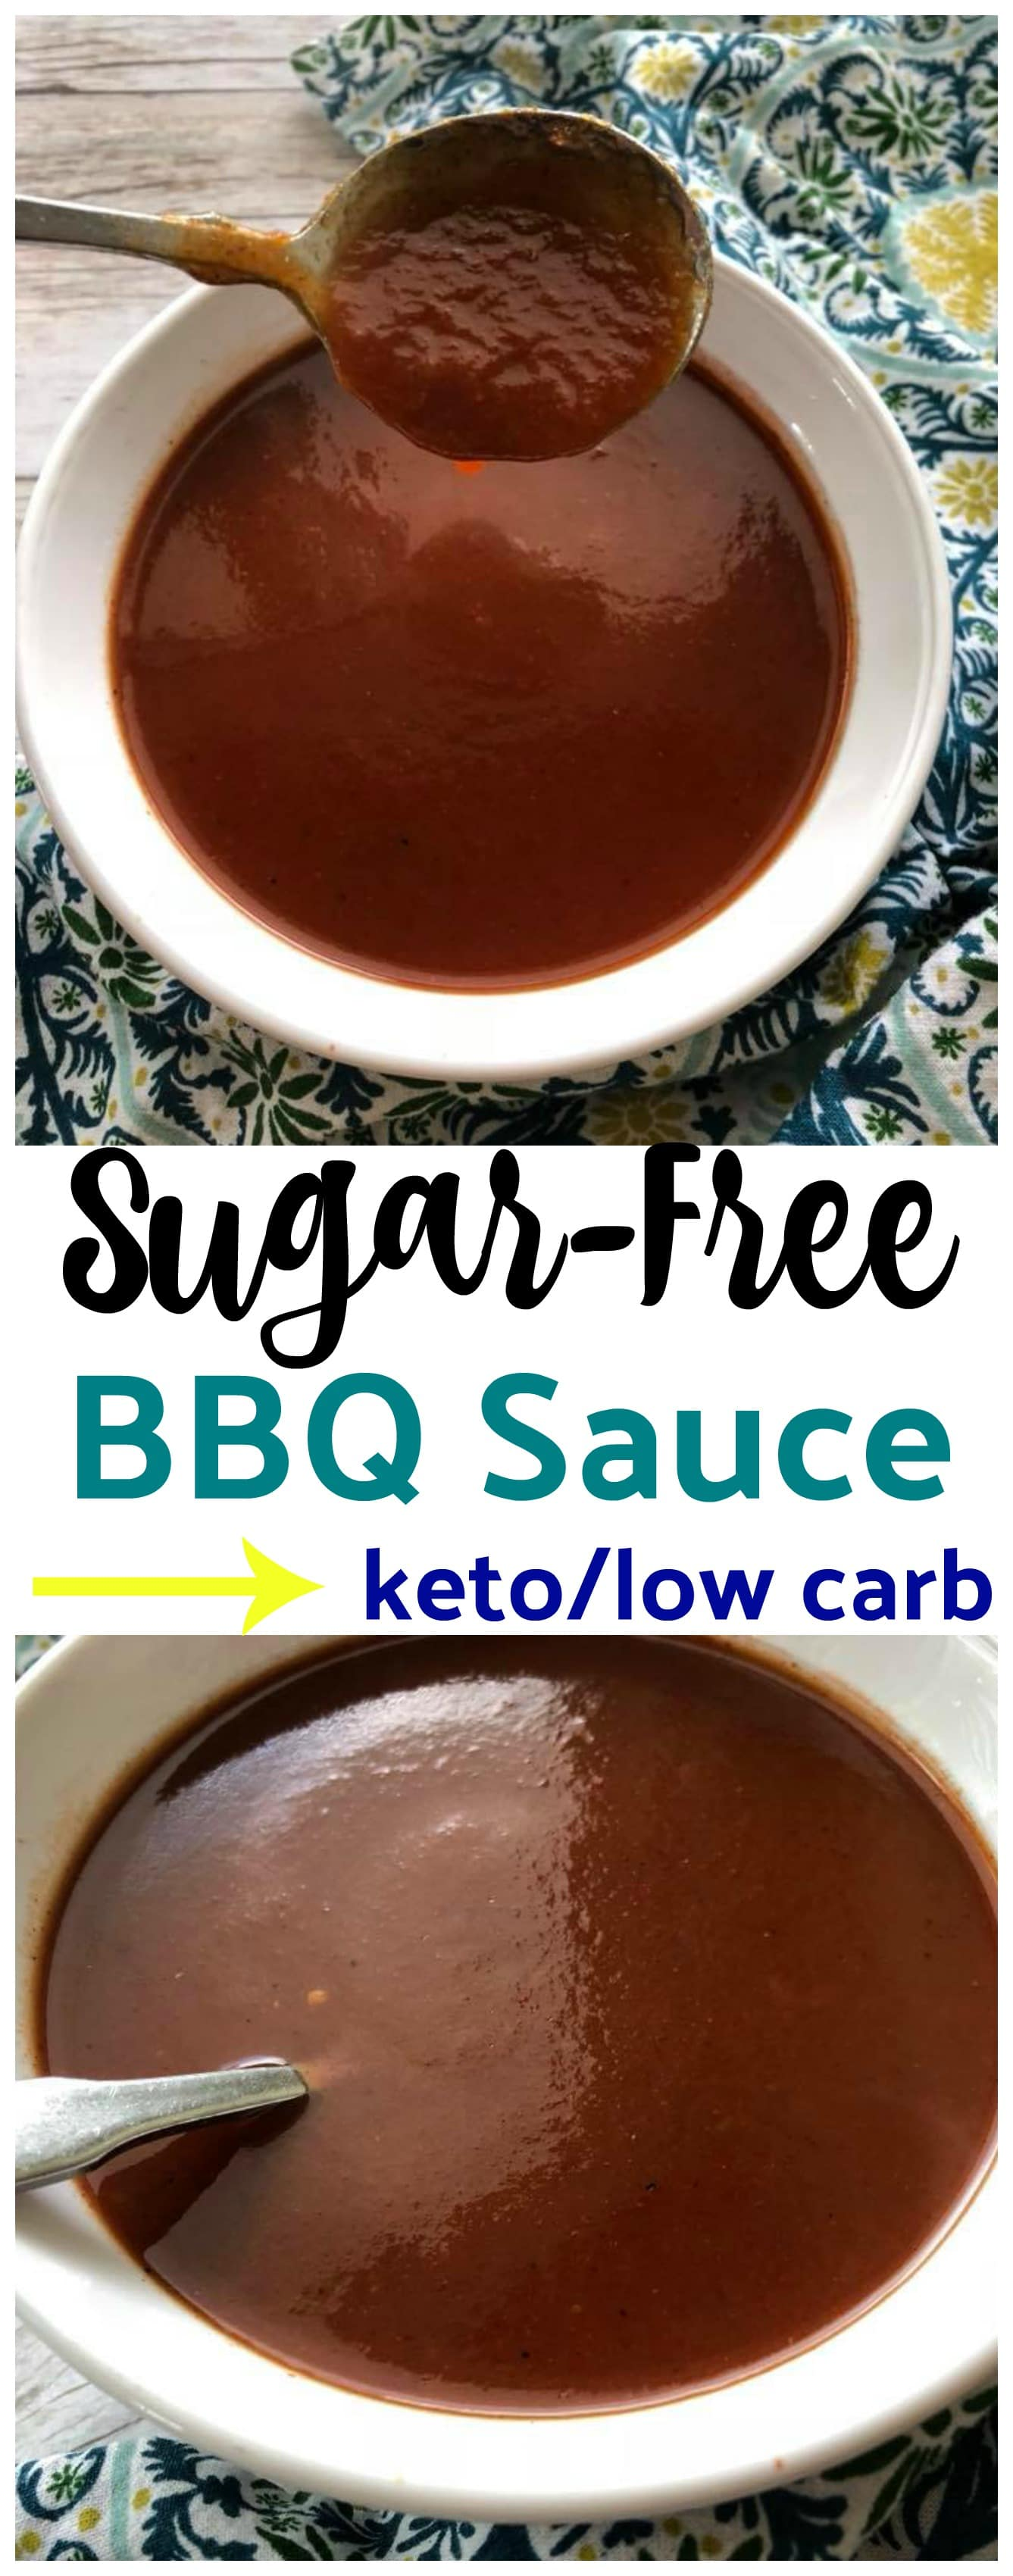 Homemade Sugar-Free  Low Carb BBQ Sauce {keto friendly} is so easy to make and it tastes delicious. It tastes just like my daddy's homemade sauce!